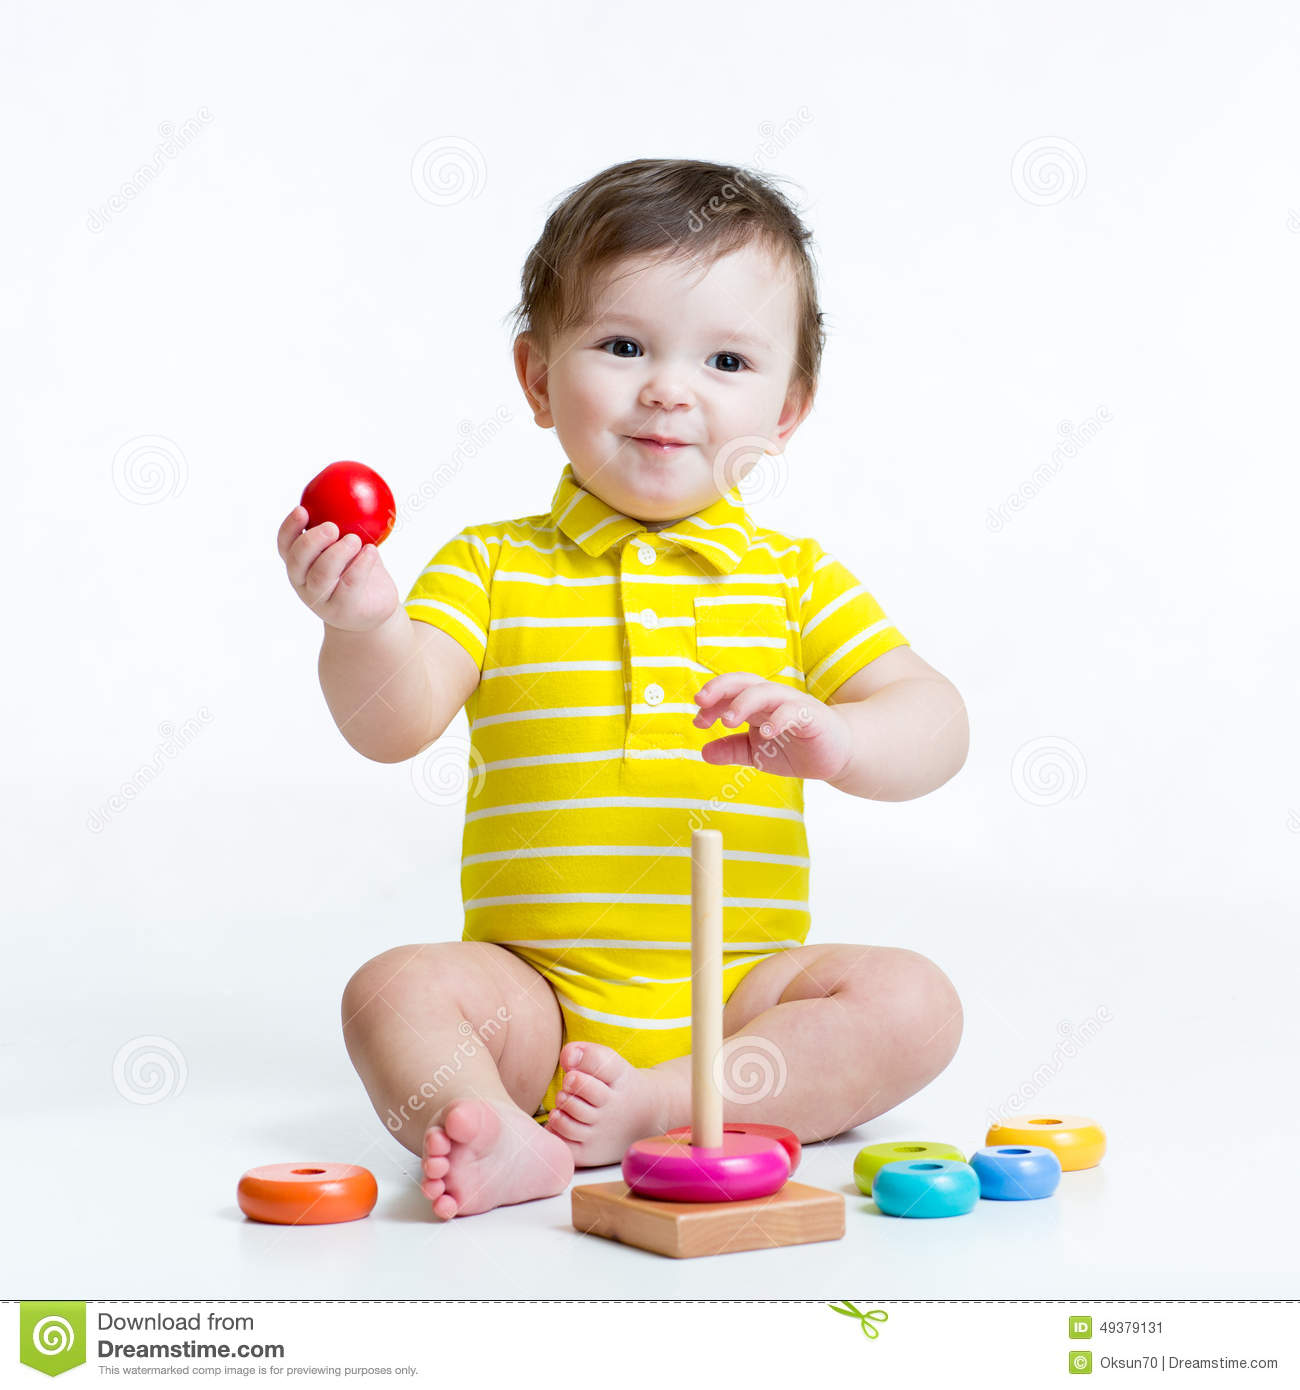 Baby Boy Playing With Pyramid Toy Stock Image Image Of Creativity